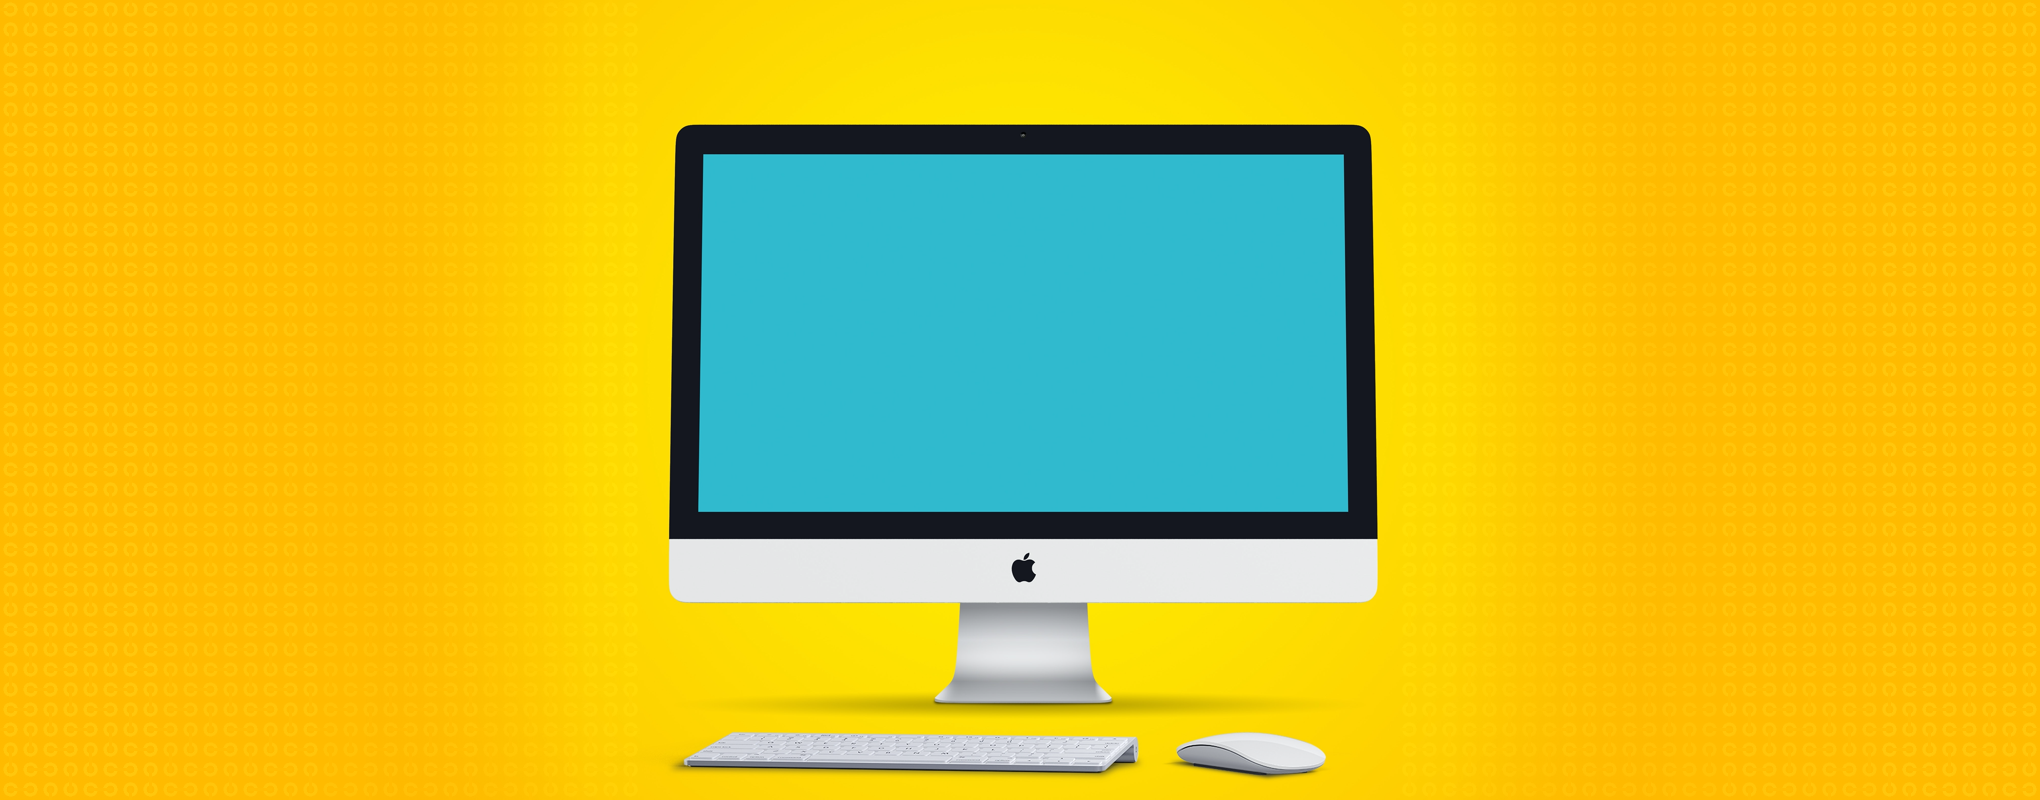 How to Keep Your Mac Workflow Smooth & Productive (Tips + Apps)